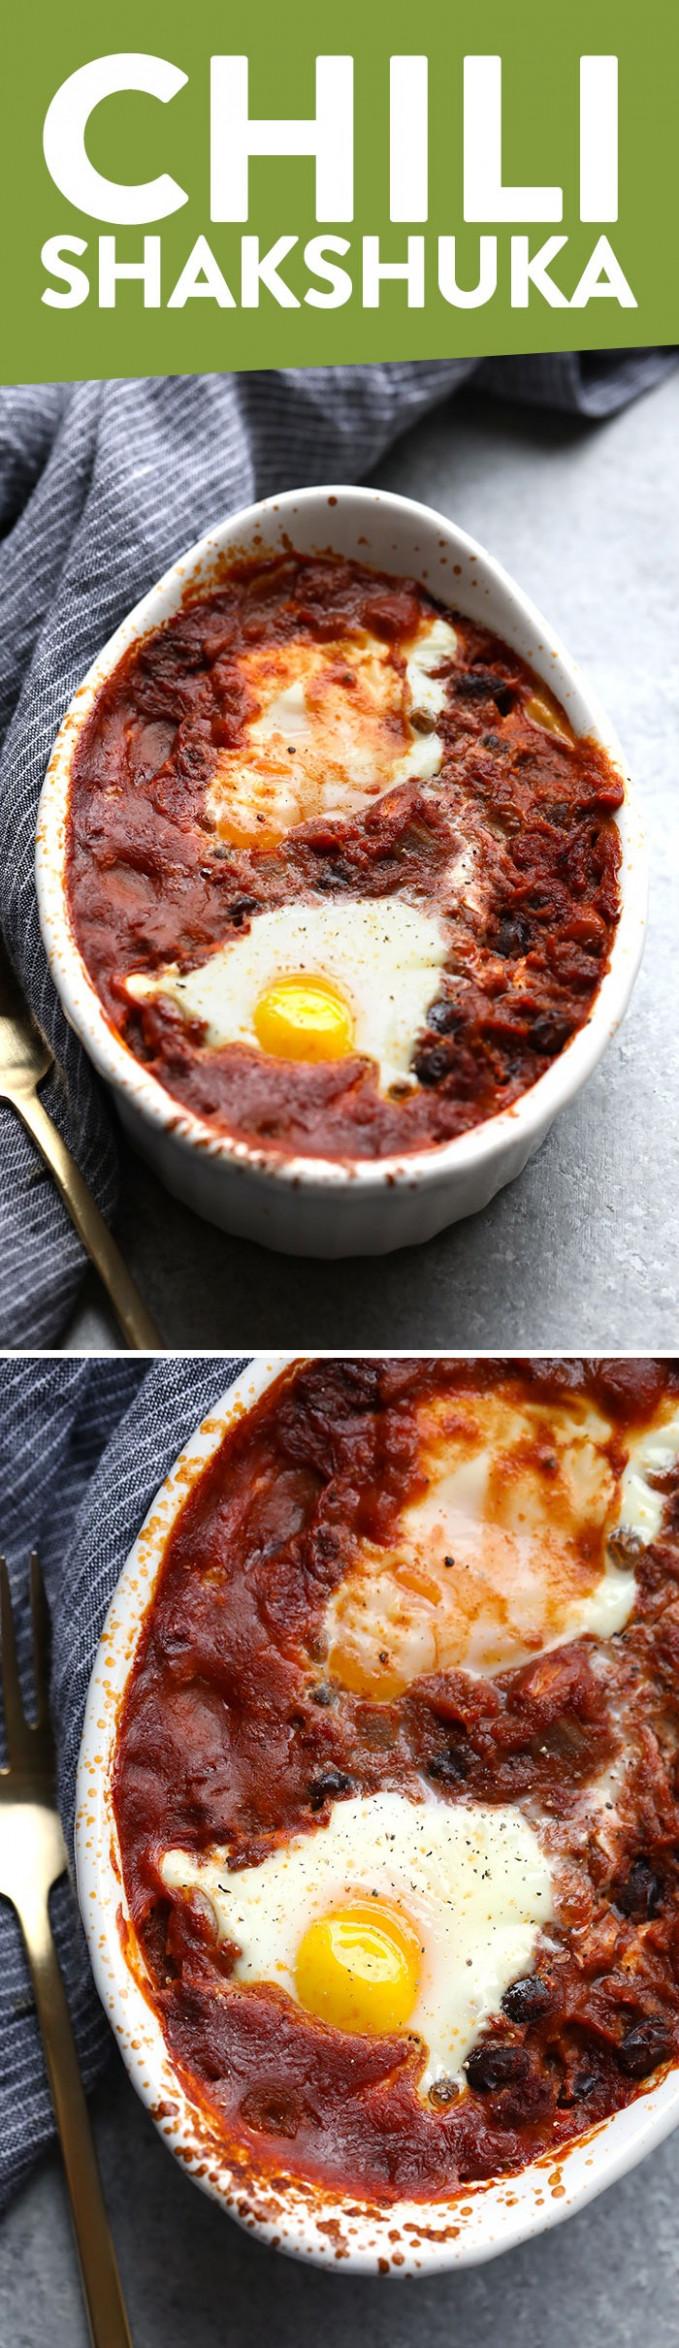 Leftover Chili Recipes (4 ways!) - Fit Foodie Finds